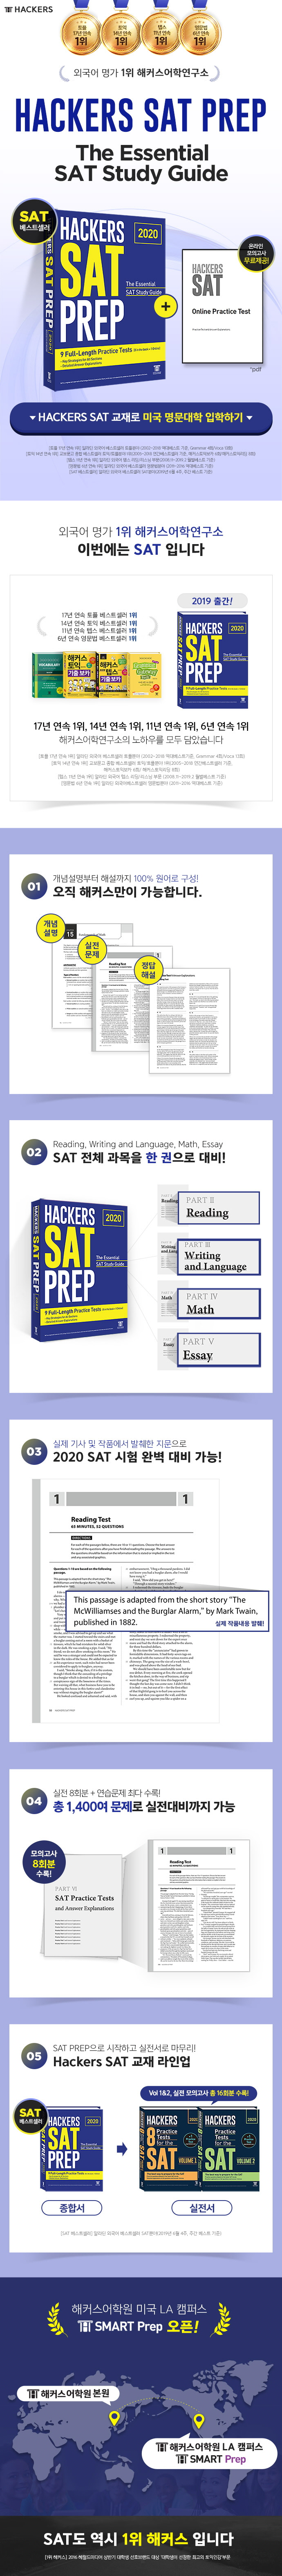 HACKERS SAT PREP: The Essential SAT Study Guide(2021) 도서 상세이미지